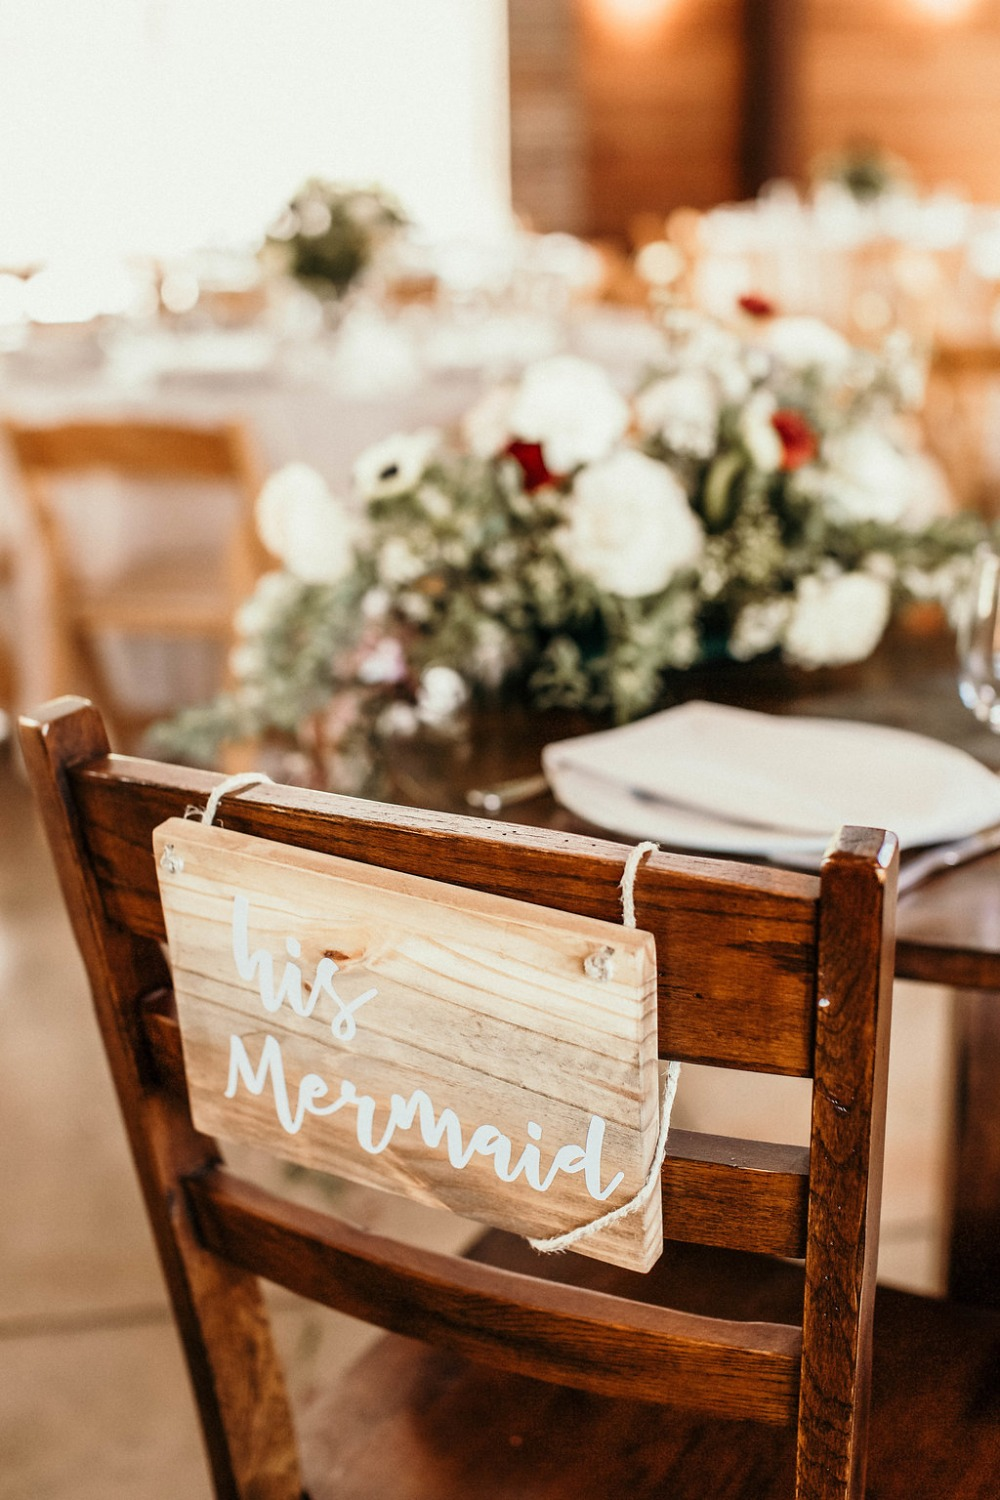 his mermaid wedding seat sign